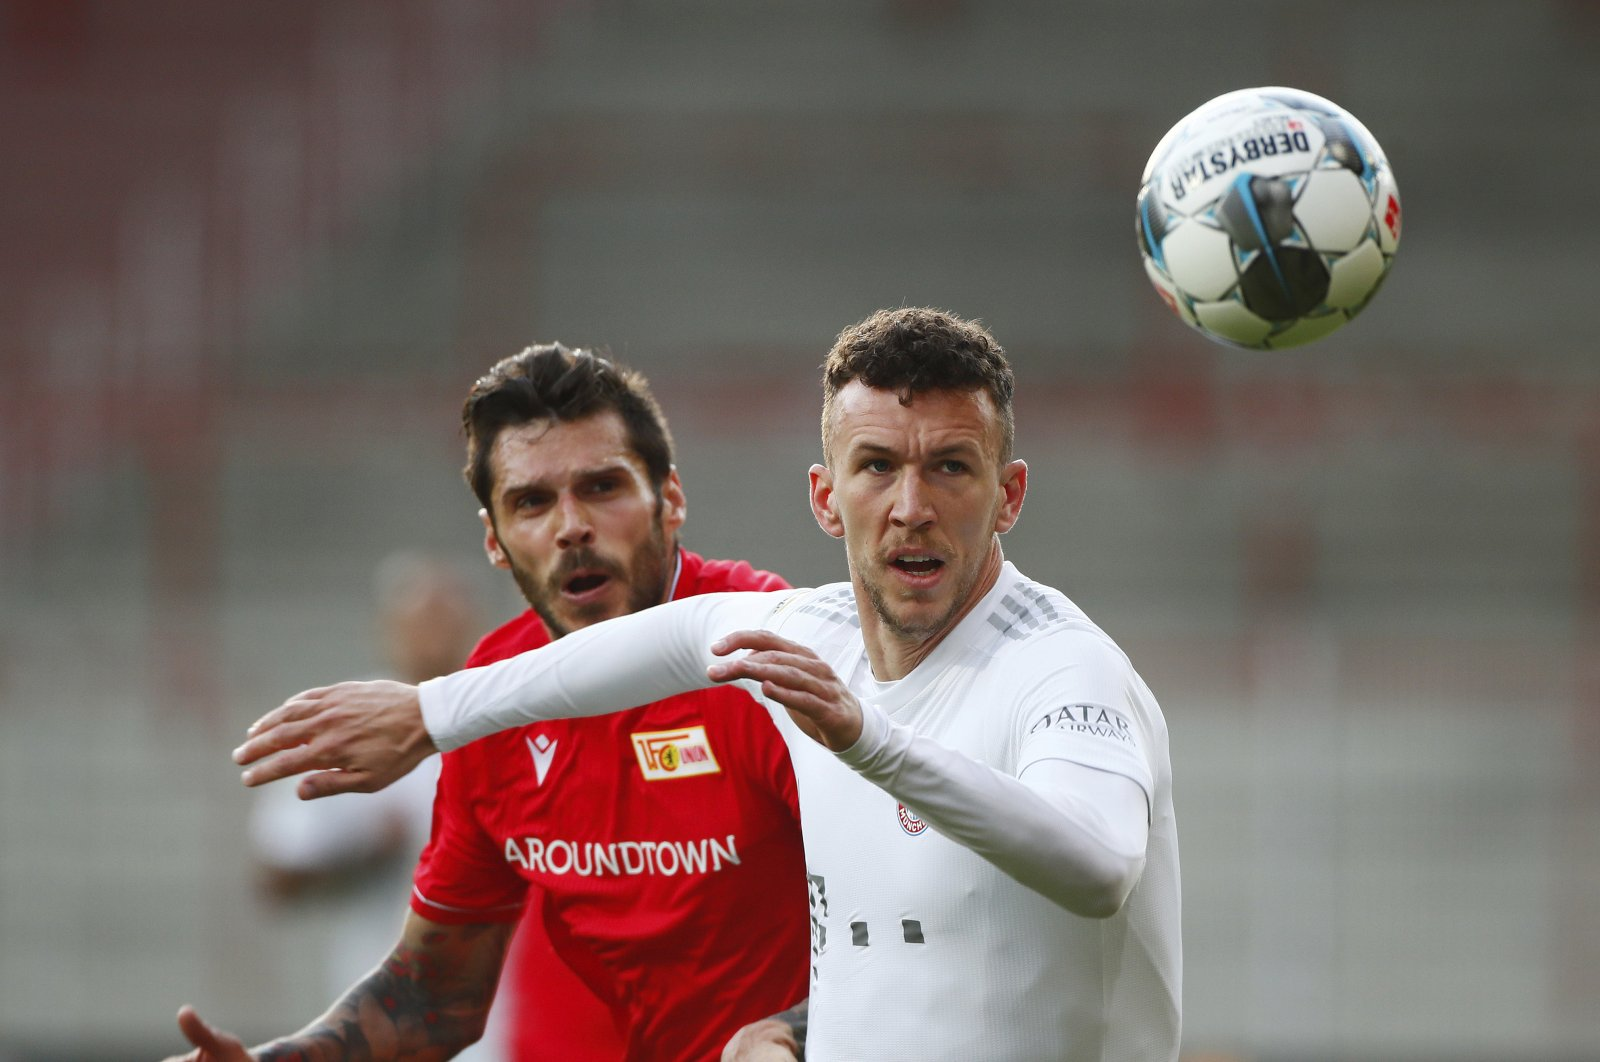 Bayern Munich's Ivan Perisic in action with Union Berlin's Christopher Trimmel during the match in Berlin, Germany, May 17, 2020. (AP Photo)